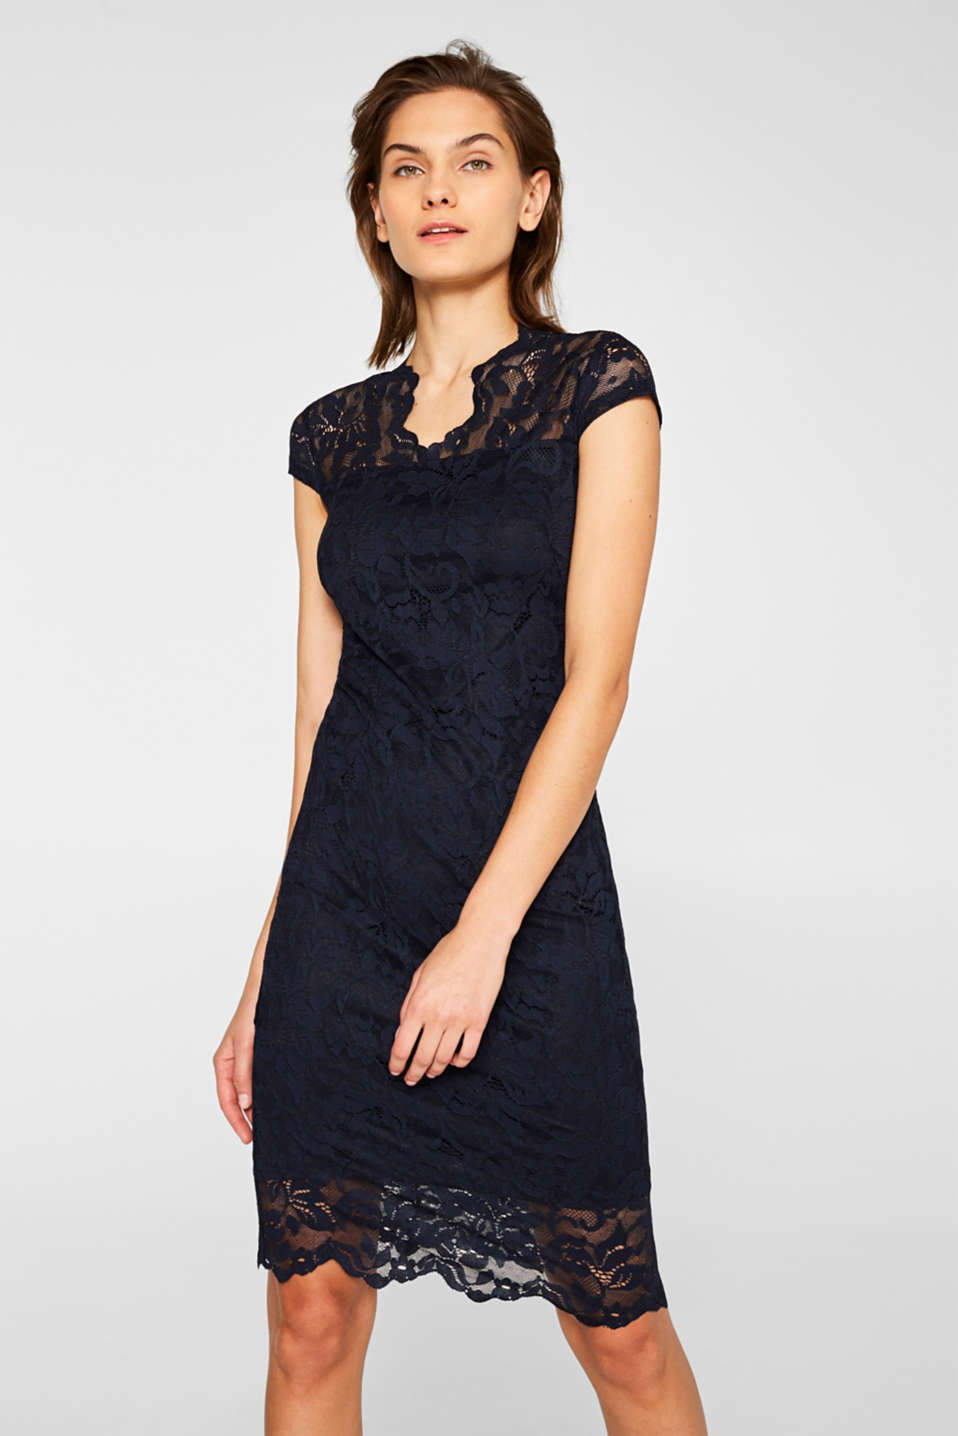 Esprit - Sheath dress in lace with stretch for comfort